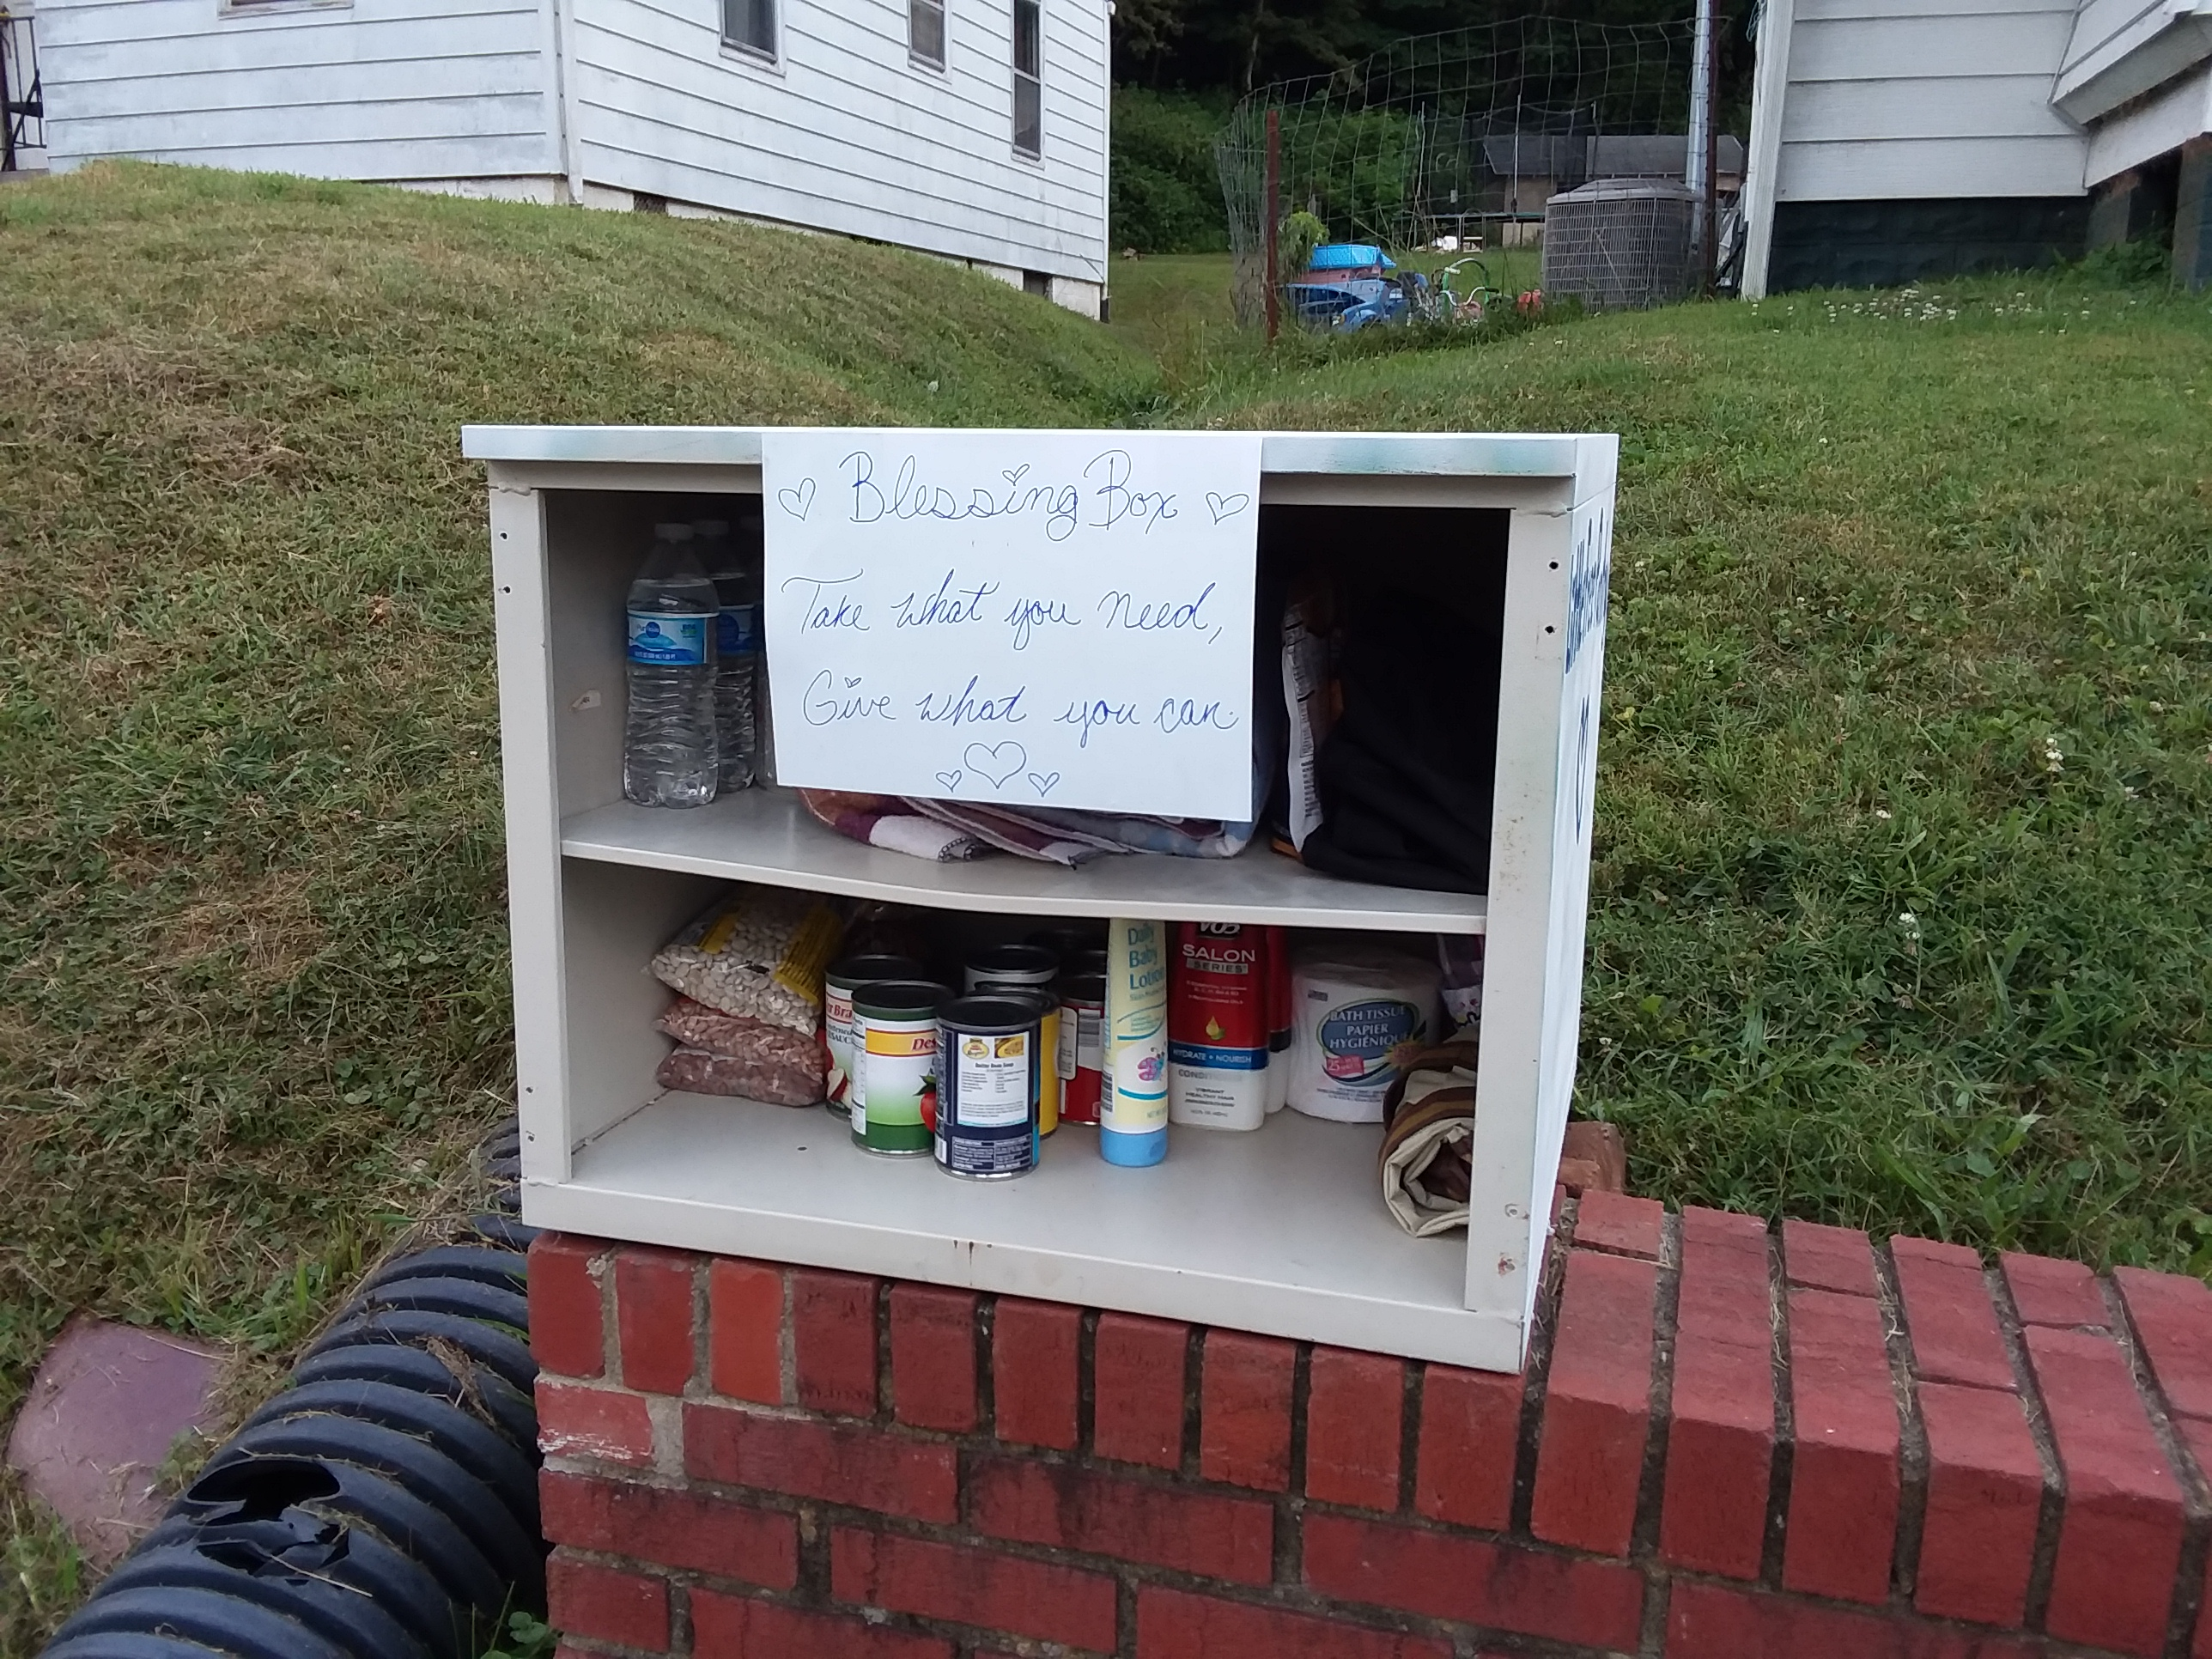 Evans Hts. Blessing Box Photo 1